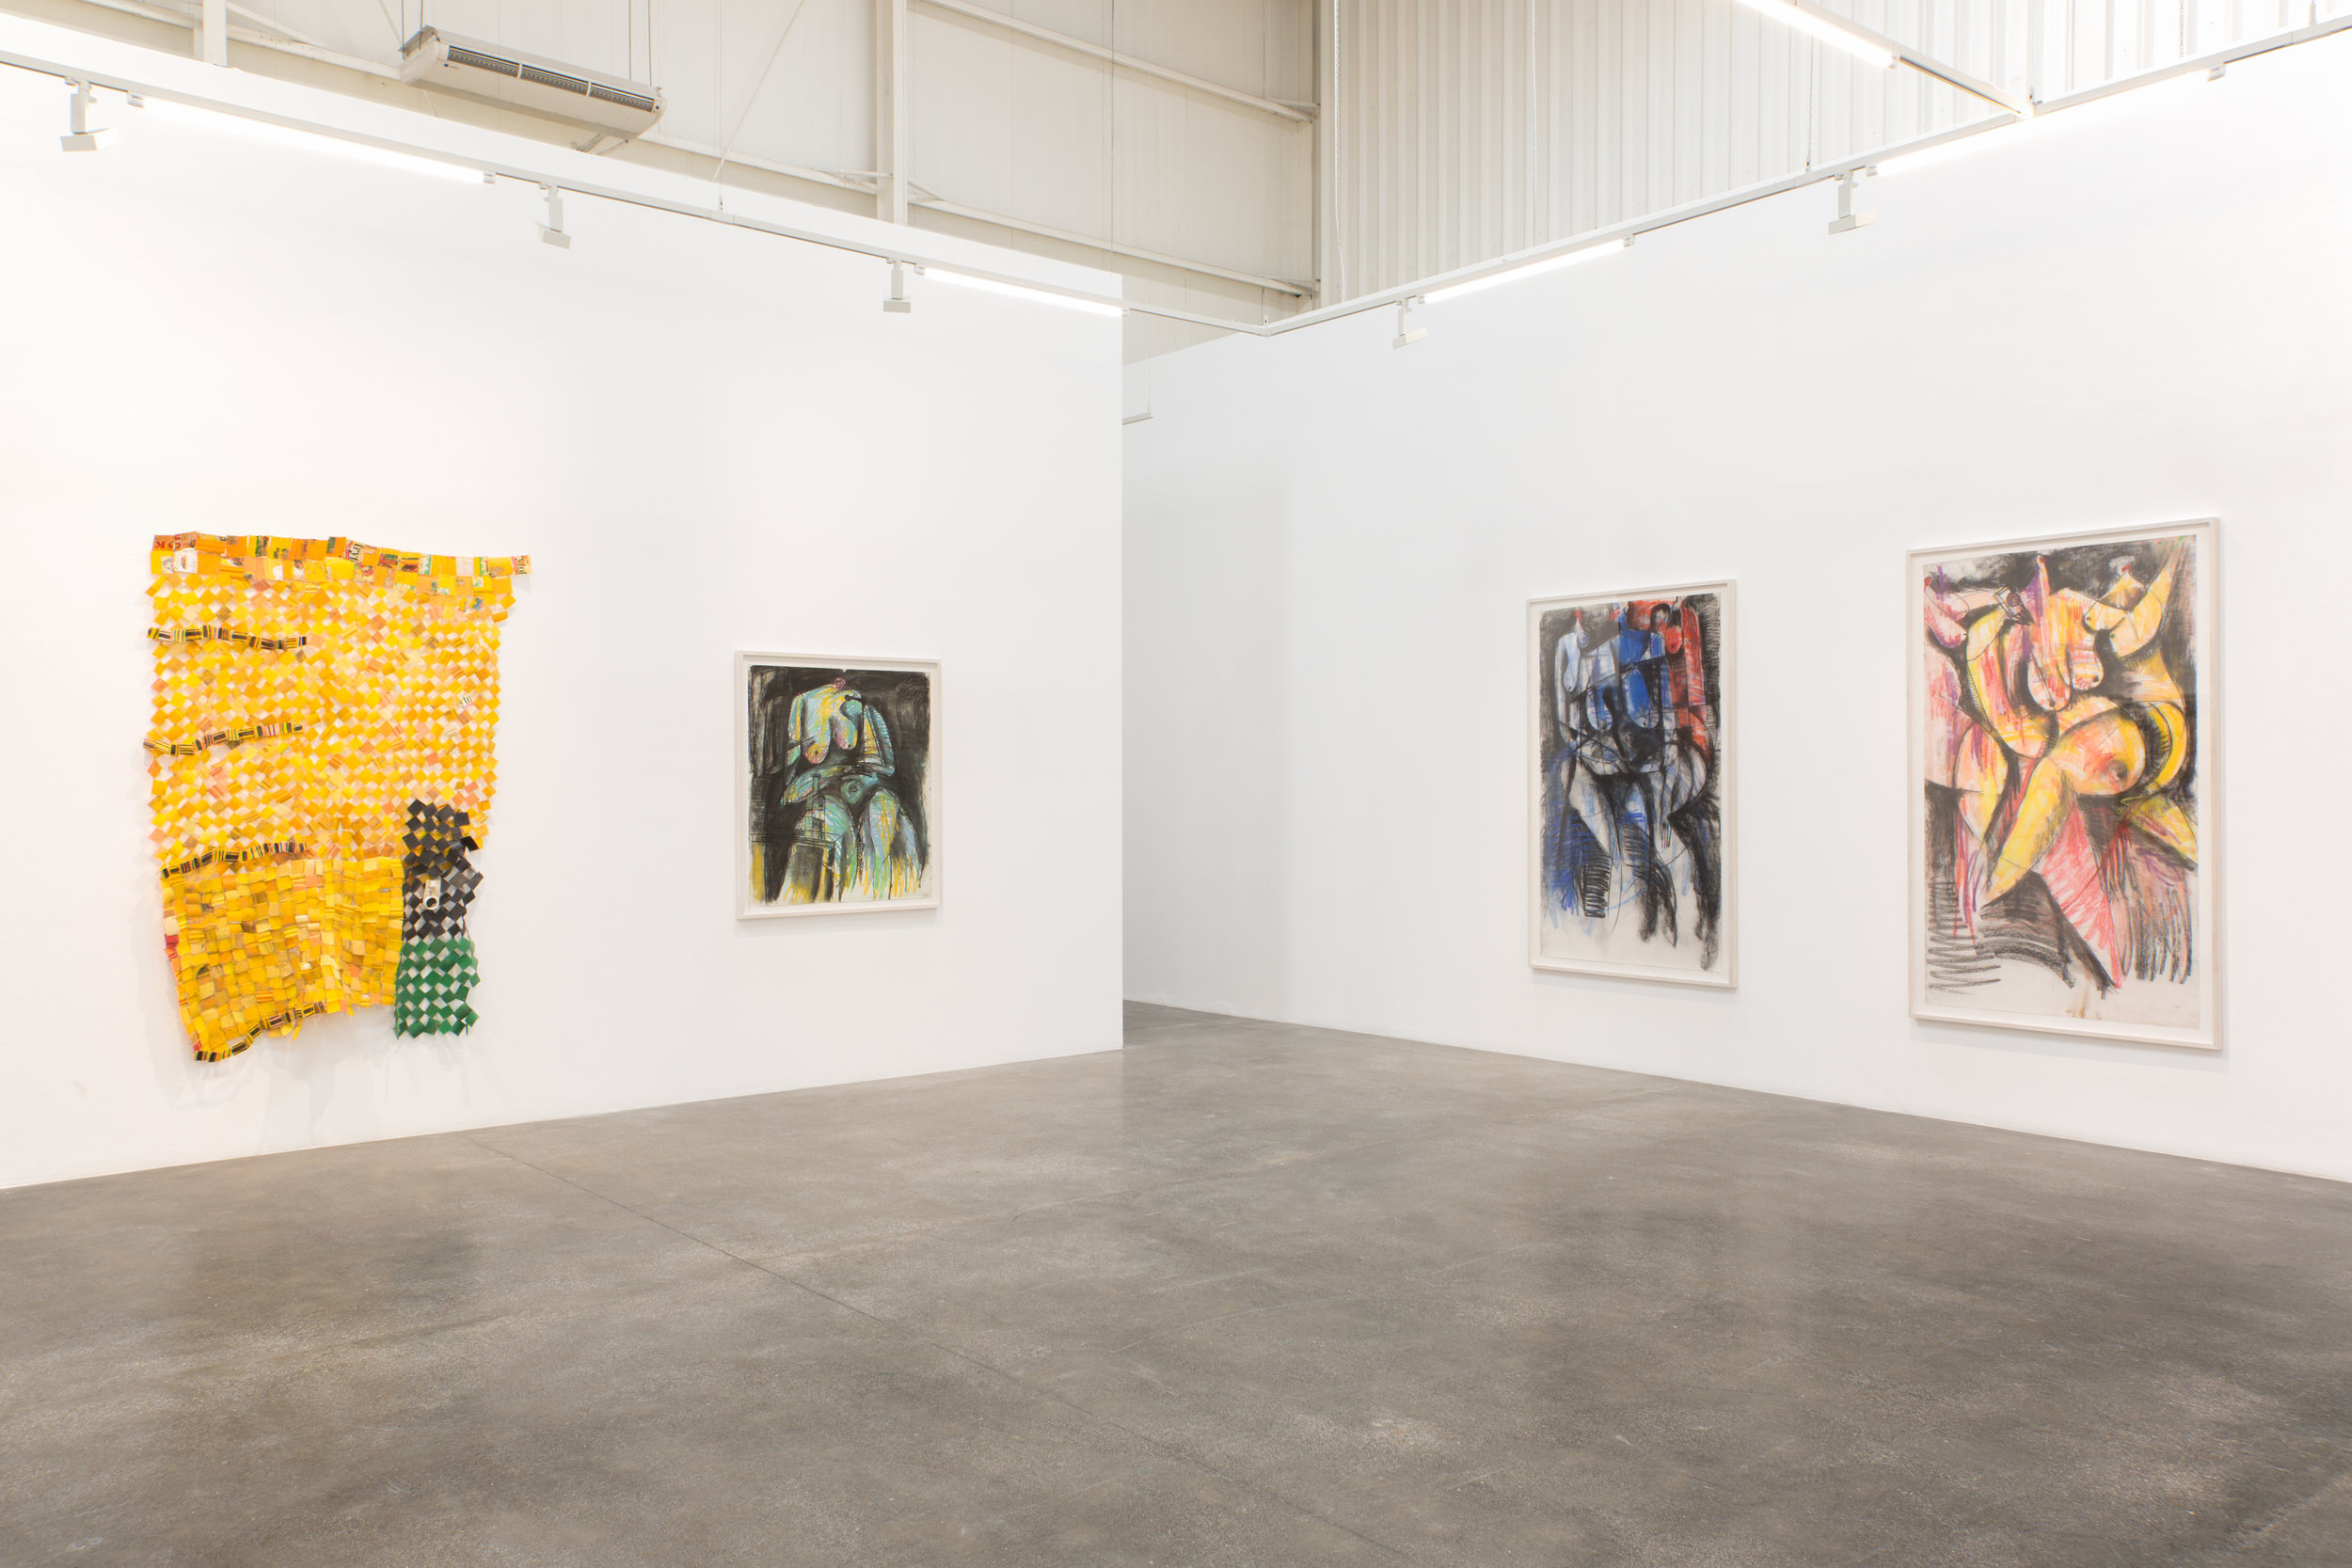 Installation view of The Displaced, Serge Attukwei Clottey's solo exhibition as part of the Gallery Takeover by Gallery 1957 at Lawrie Shabibi Gallery, Dubai. Image courtesy of Lawrie Shabibi.